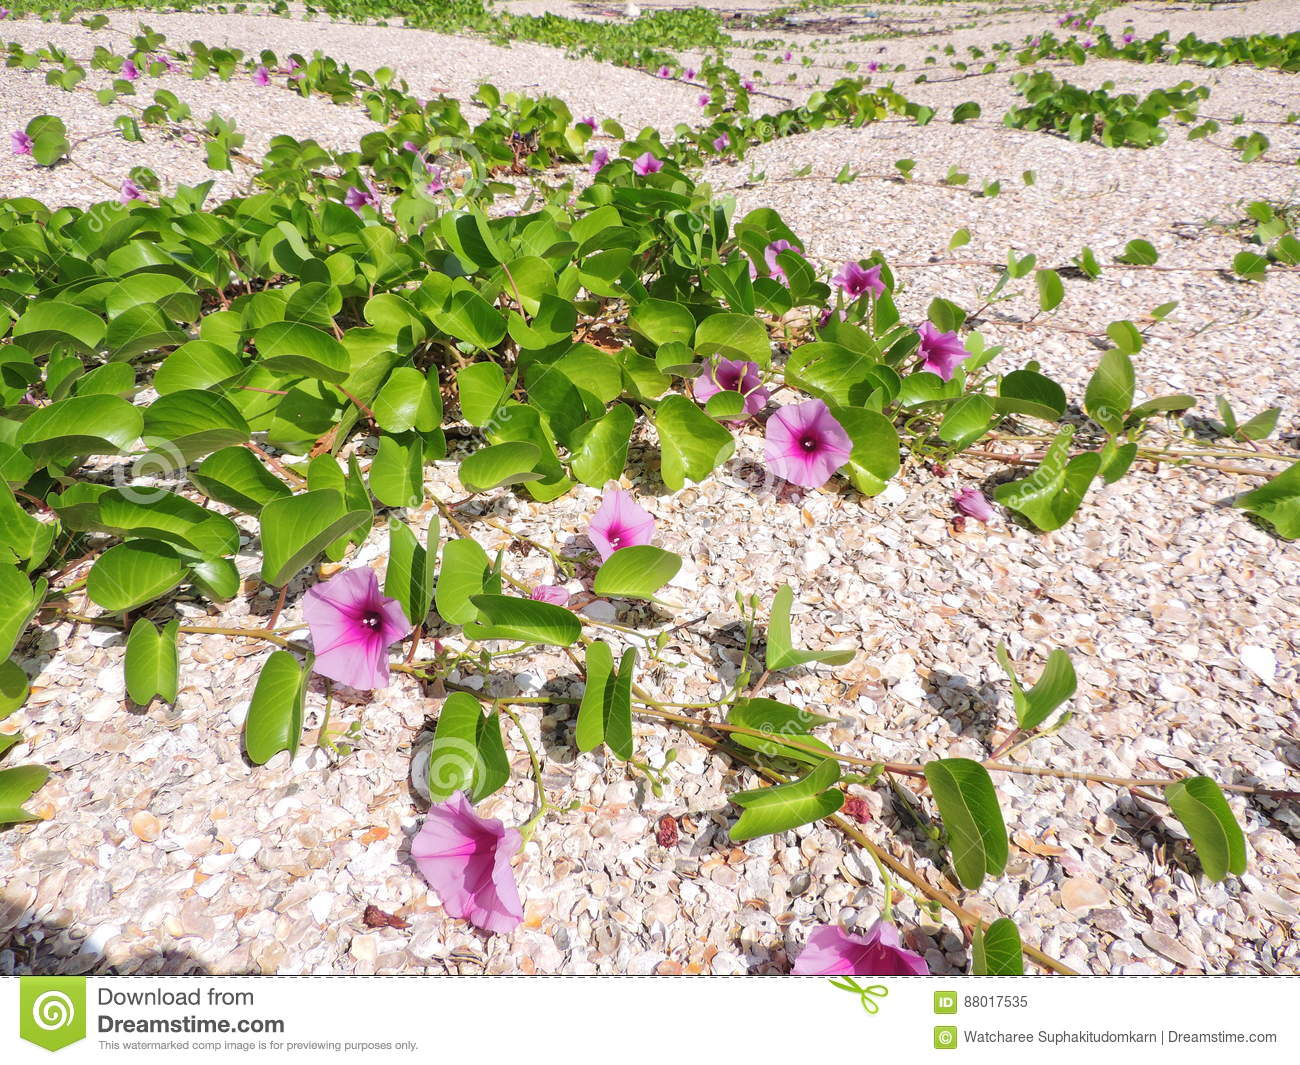 Yard of Ipomoea pes-caprae or Bayhops or Goat`s foot or Beach morning glory flower.